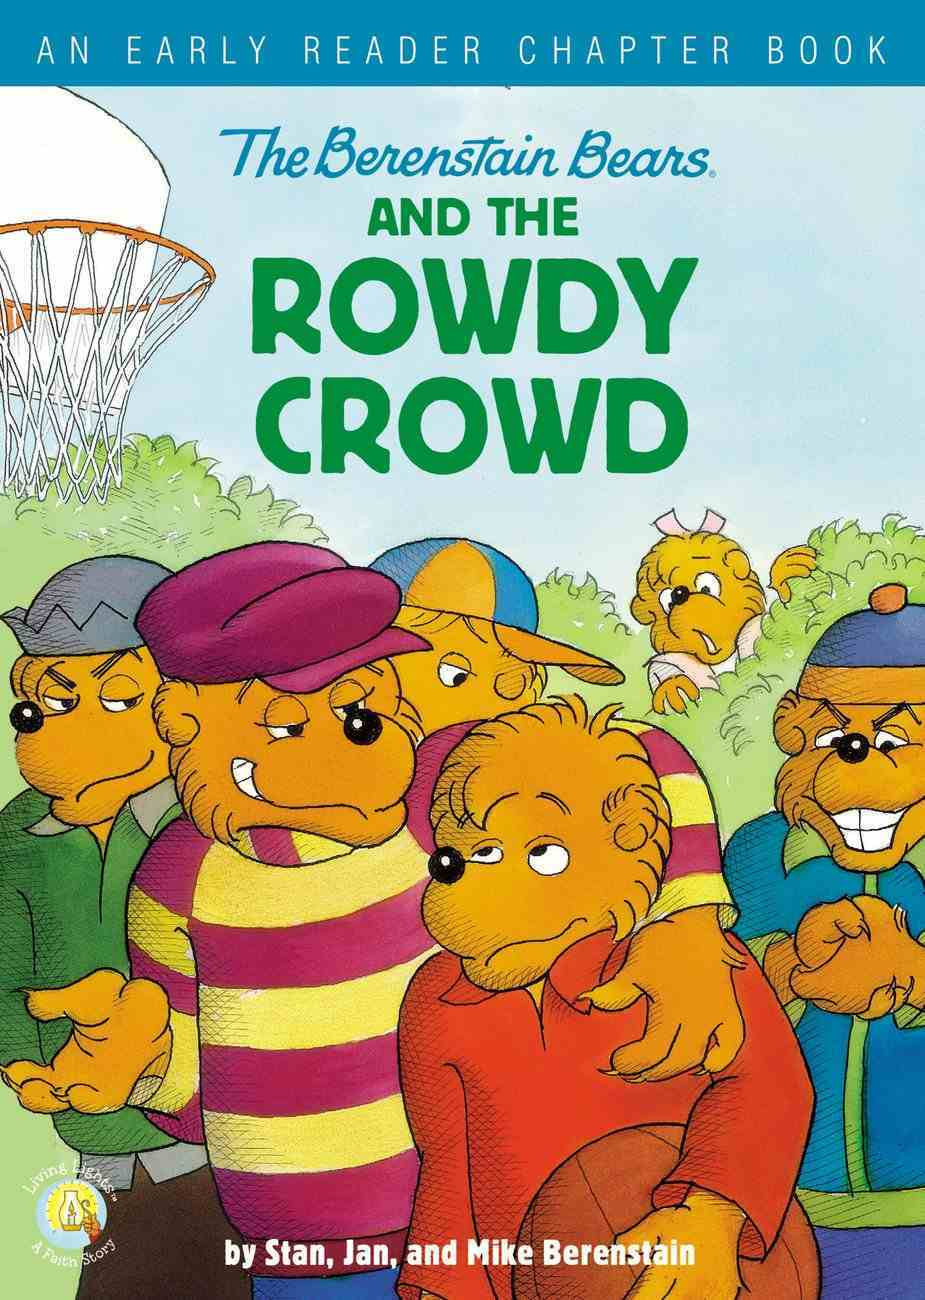 Berenstain Bears and the Rowdy Crowd, The: An Early Reader Chapter Book (The Berenstain Bears Series) Paperback